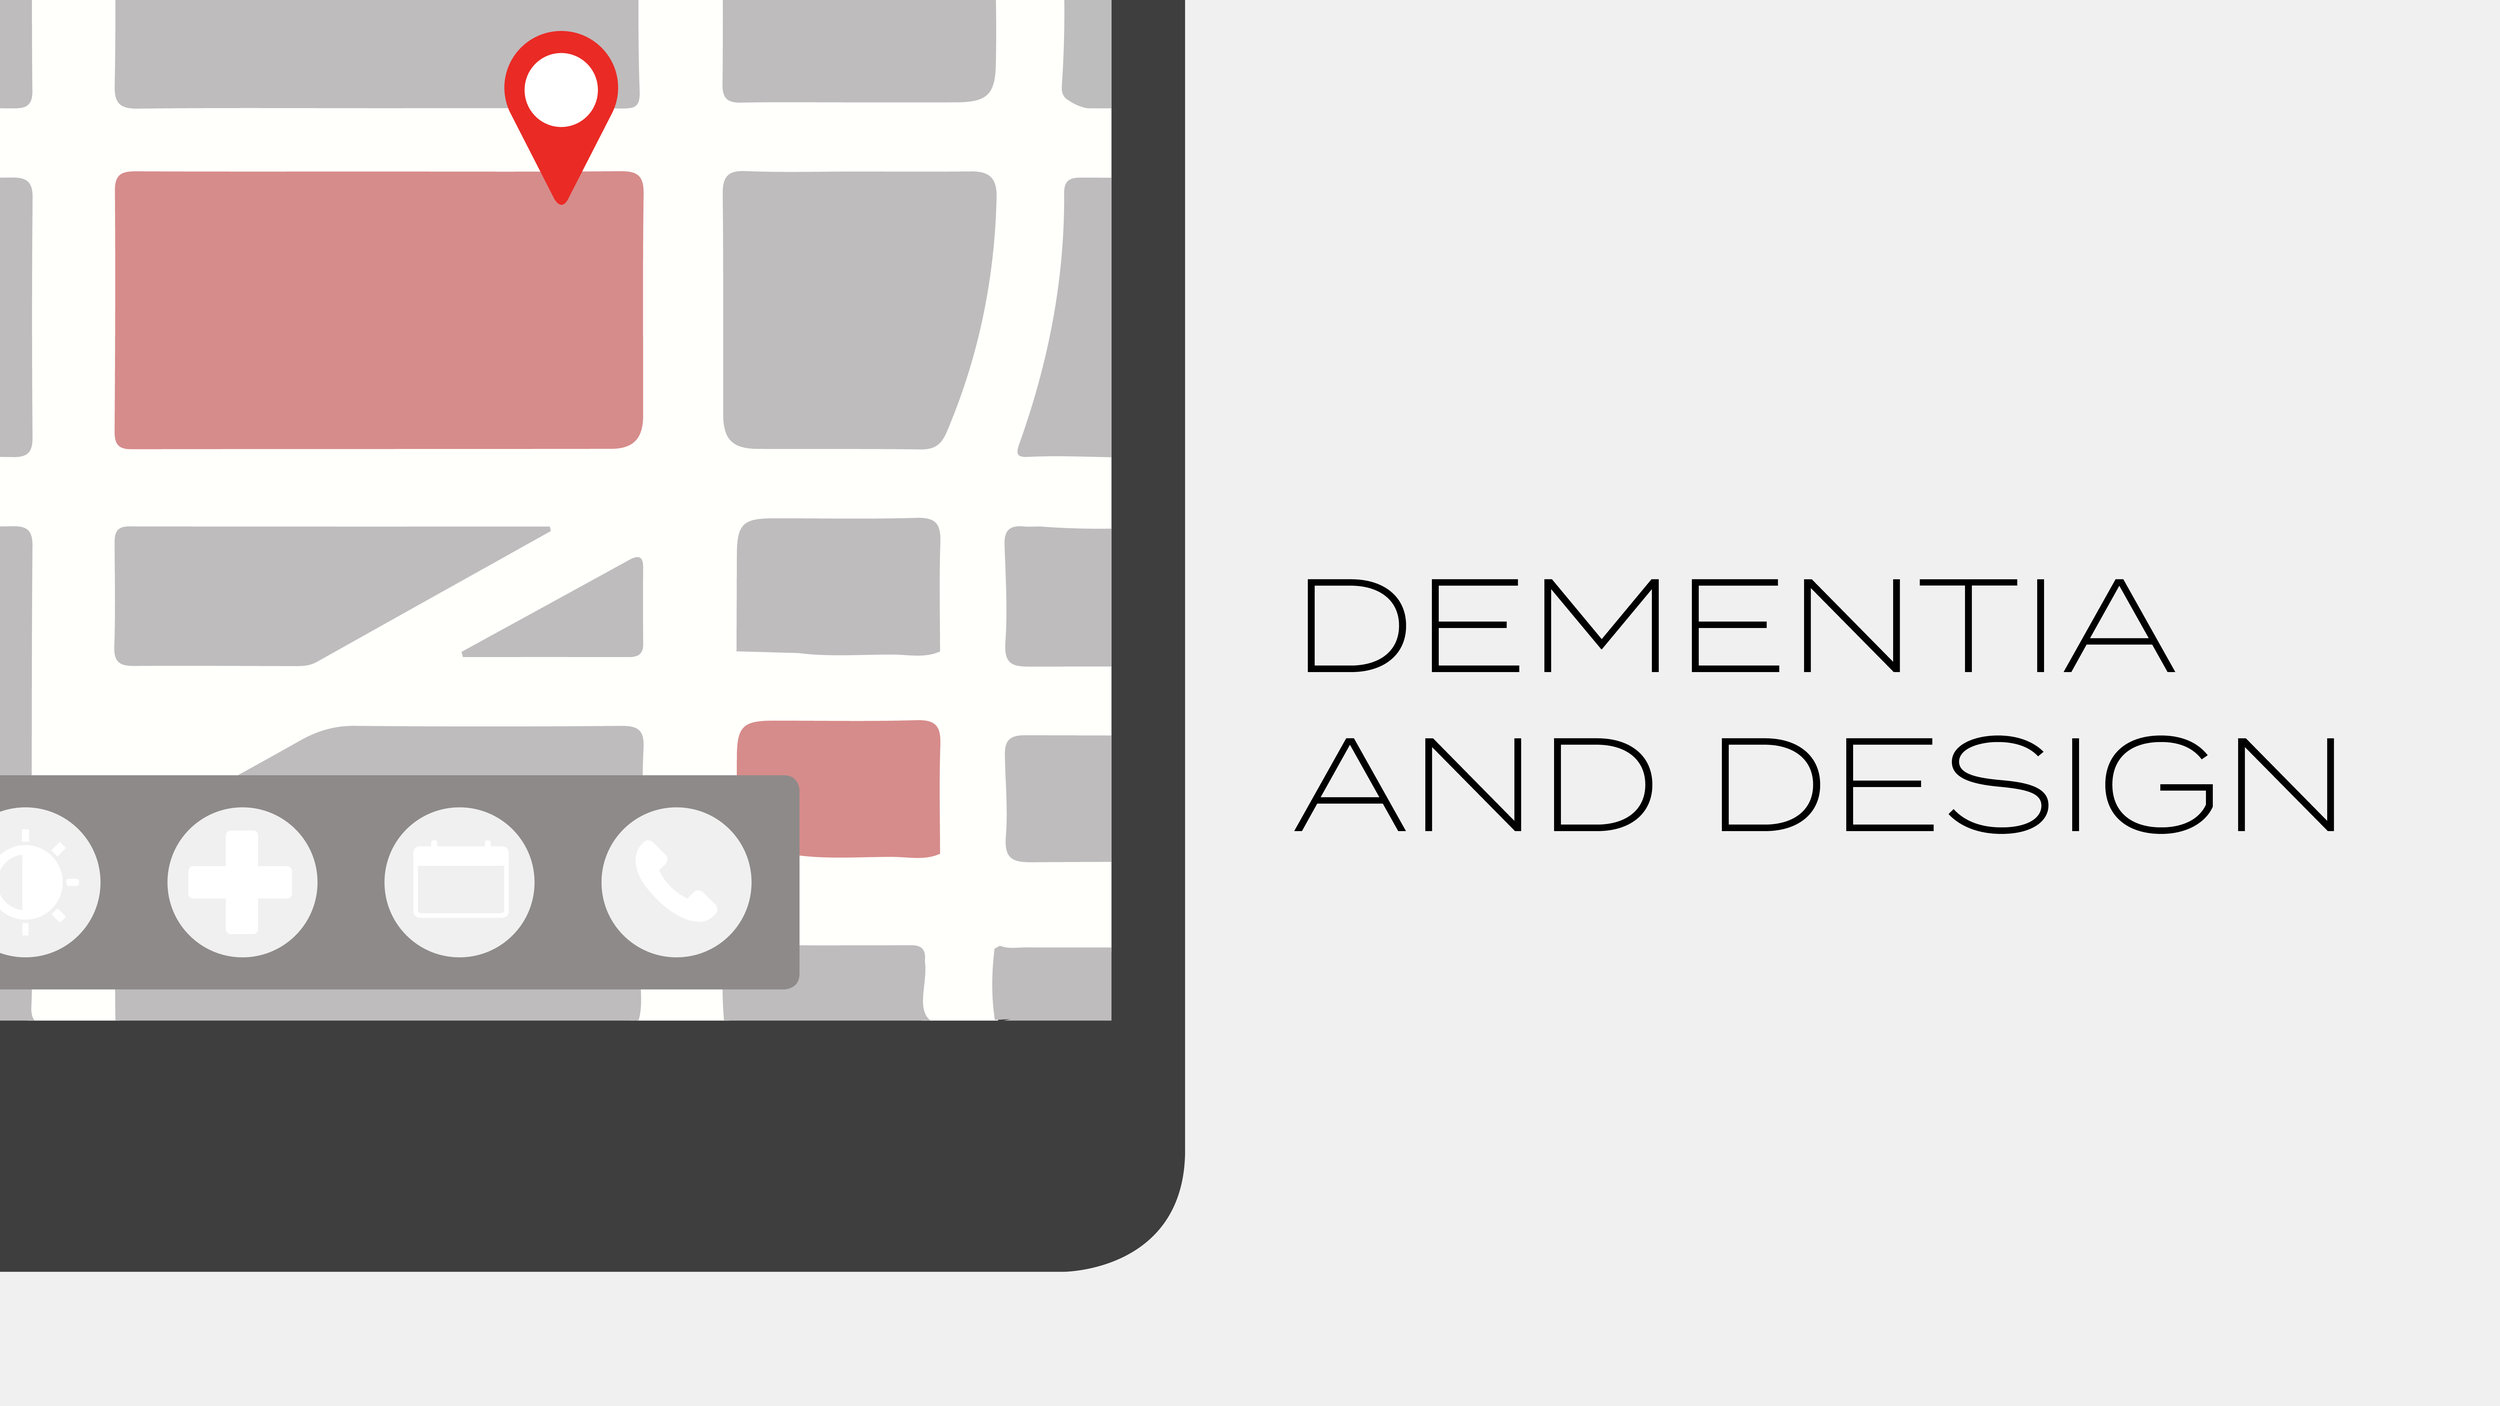 DESIGN AND DEMENTIA  A research-based project exploring how augmented reality can improve the quality of life for individuals living with dementia.